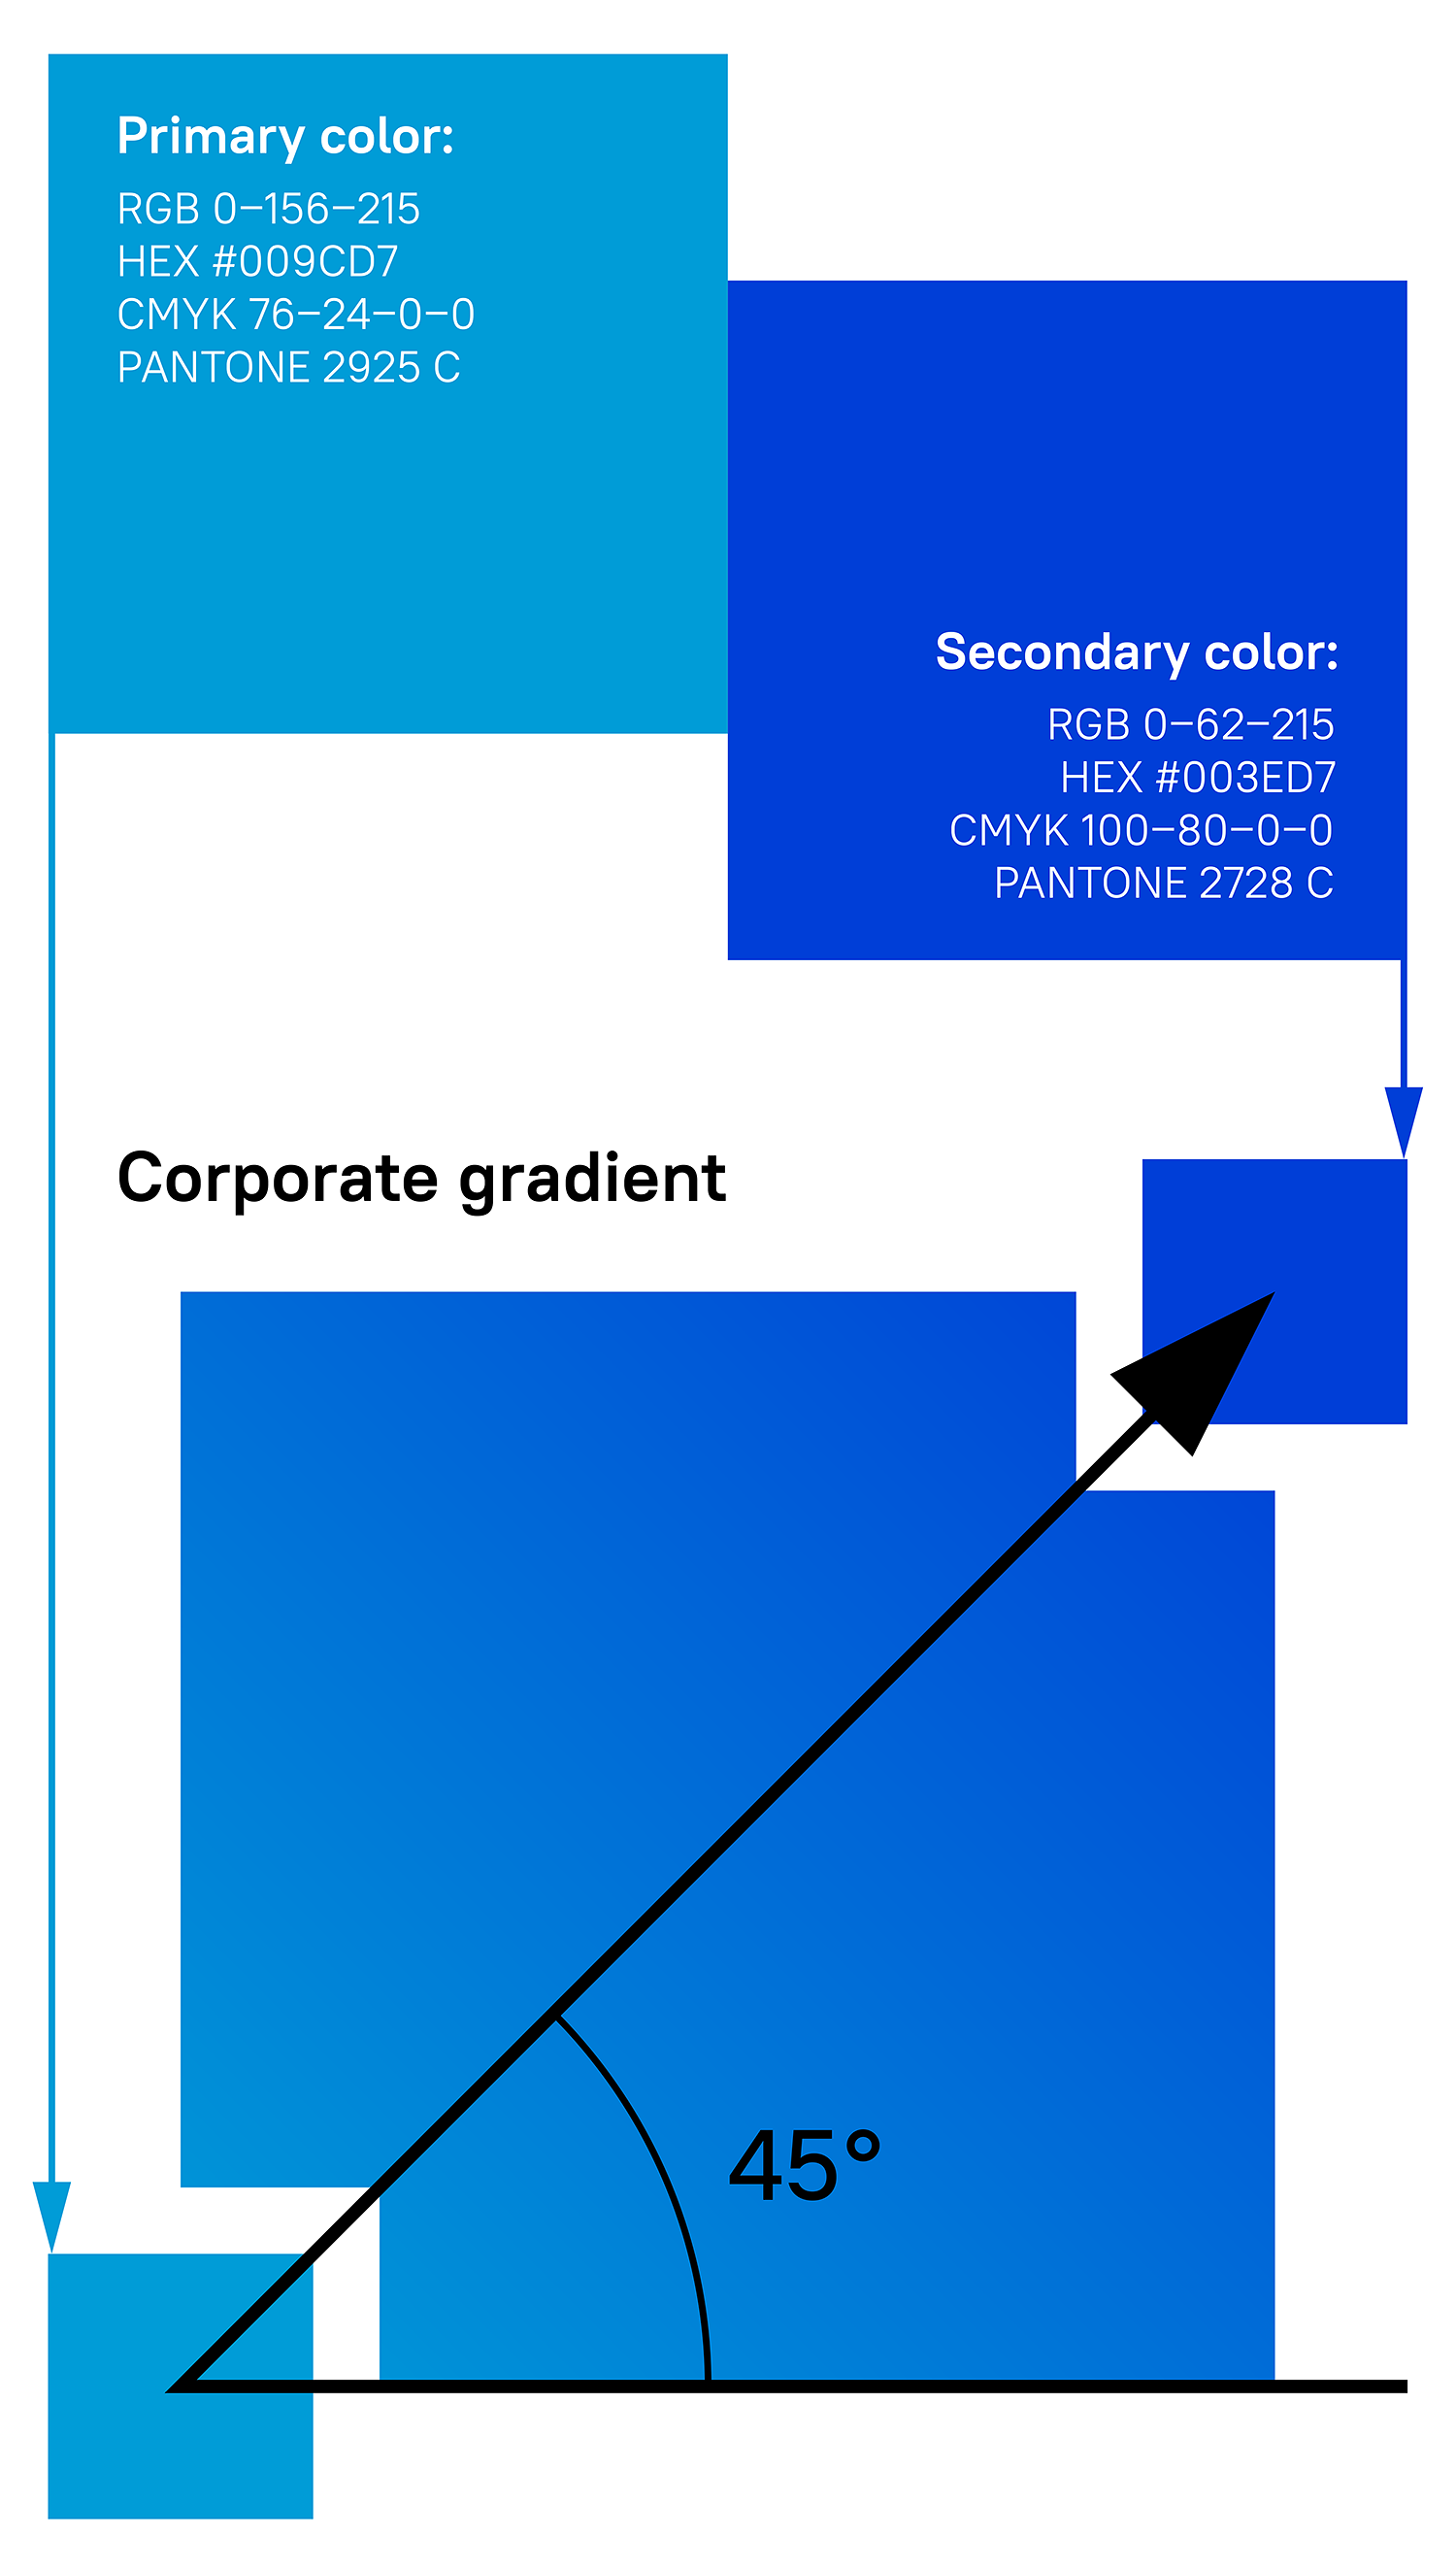 Selection of corporate colors and the principle of making the corporate gradient.